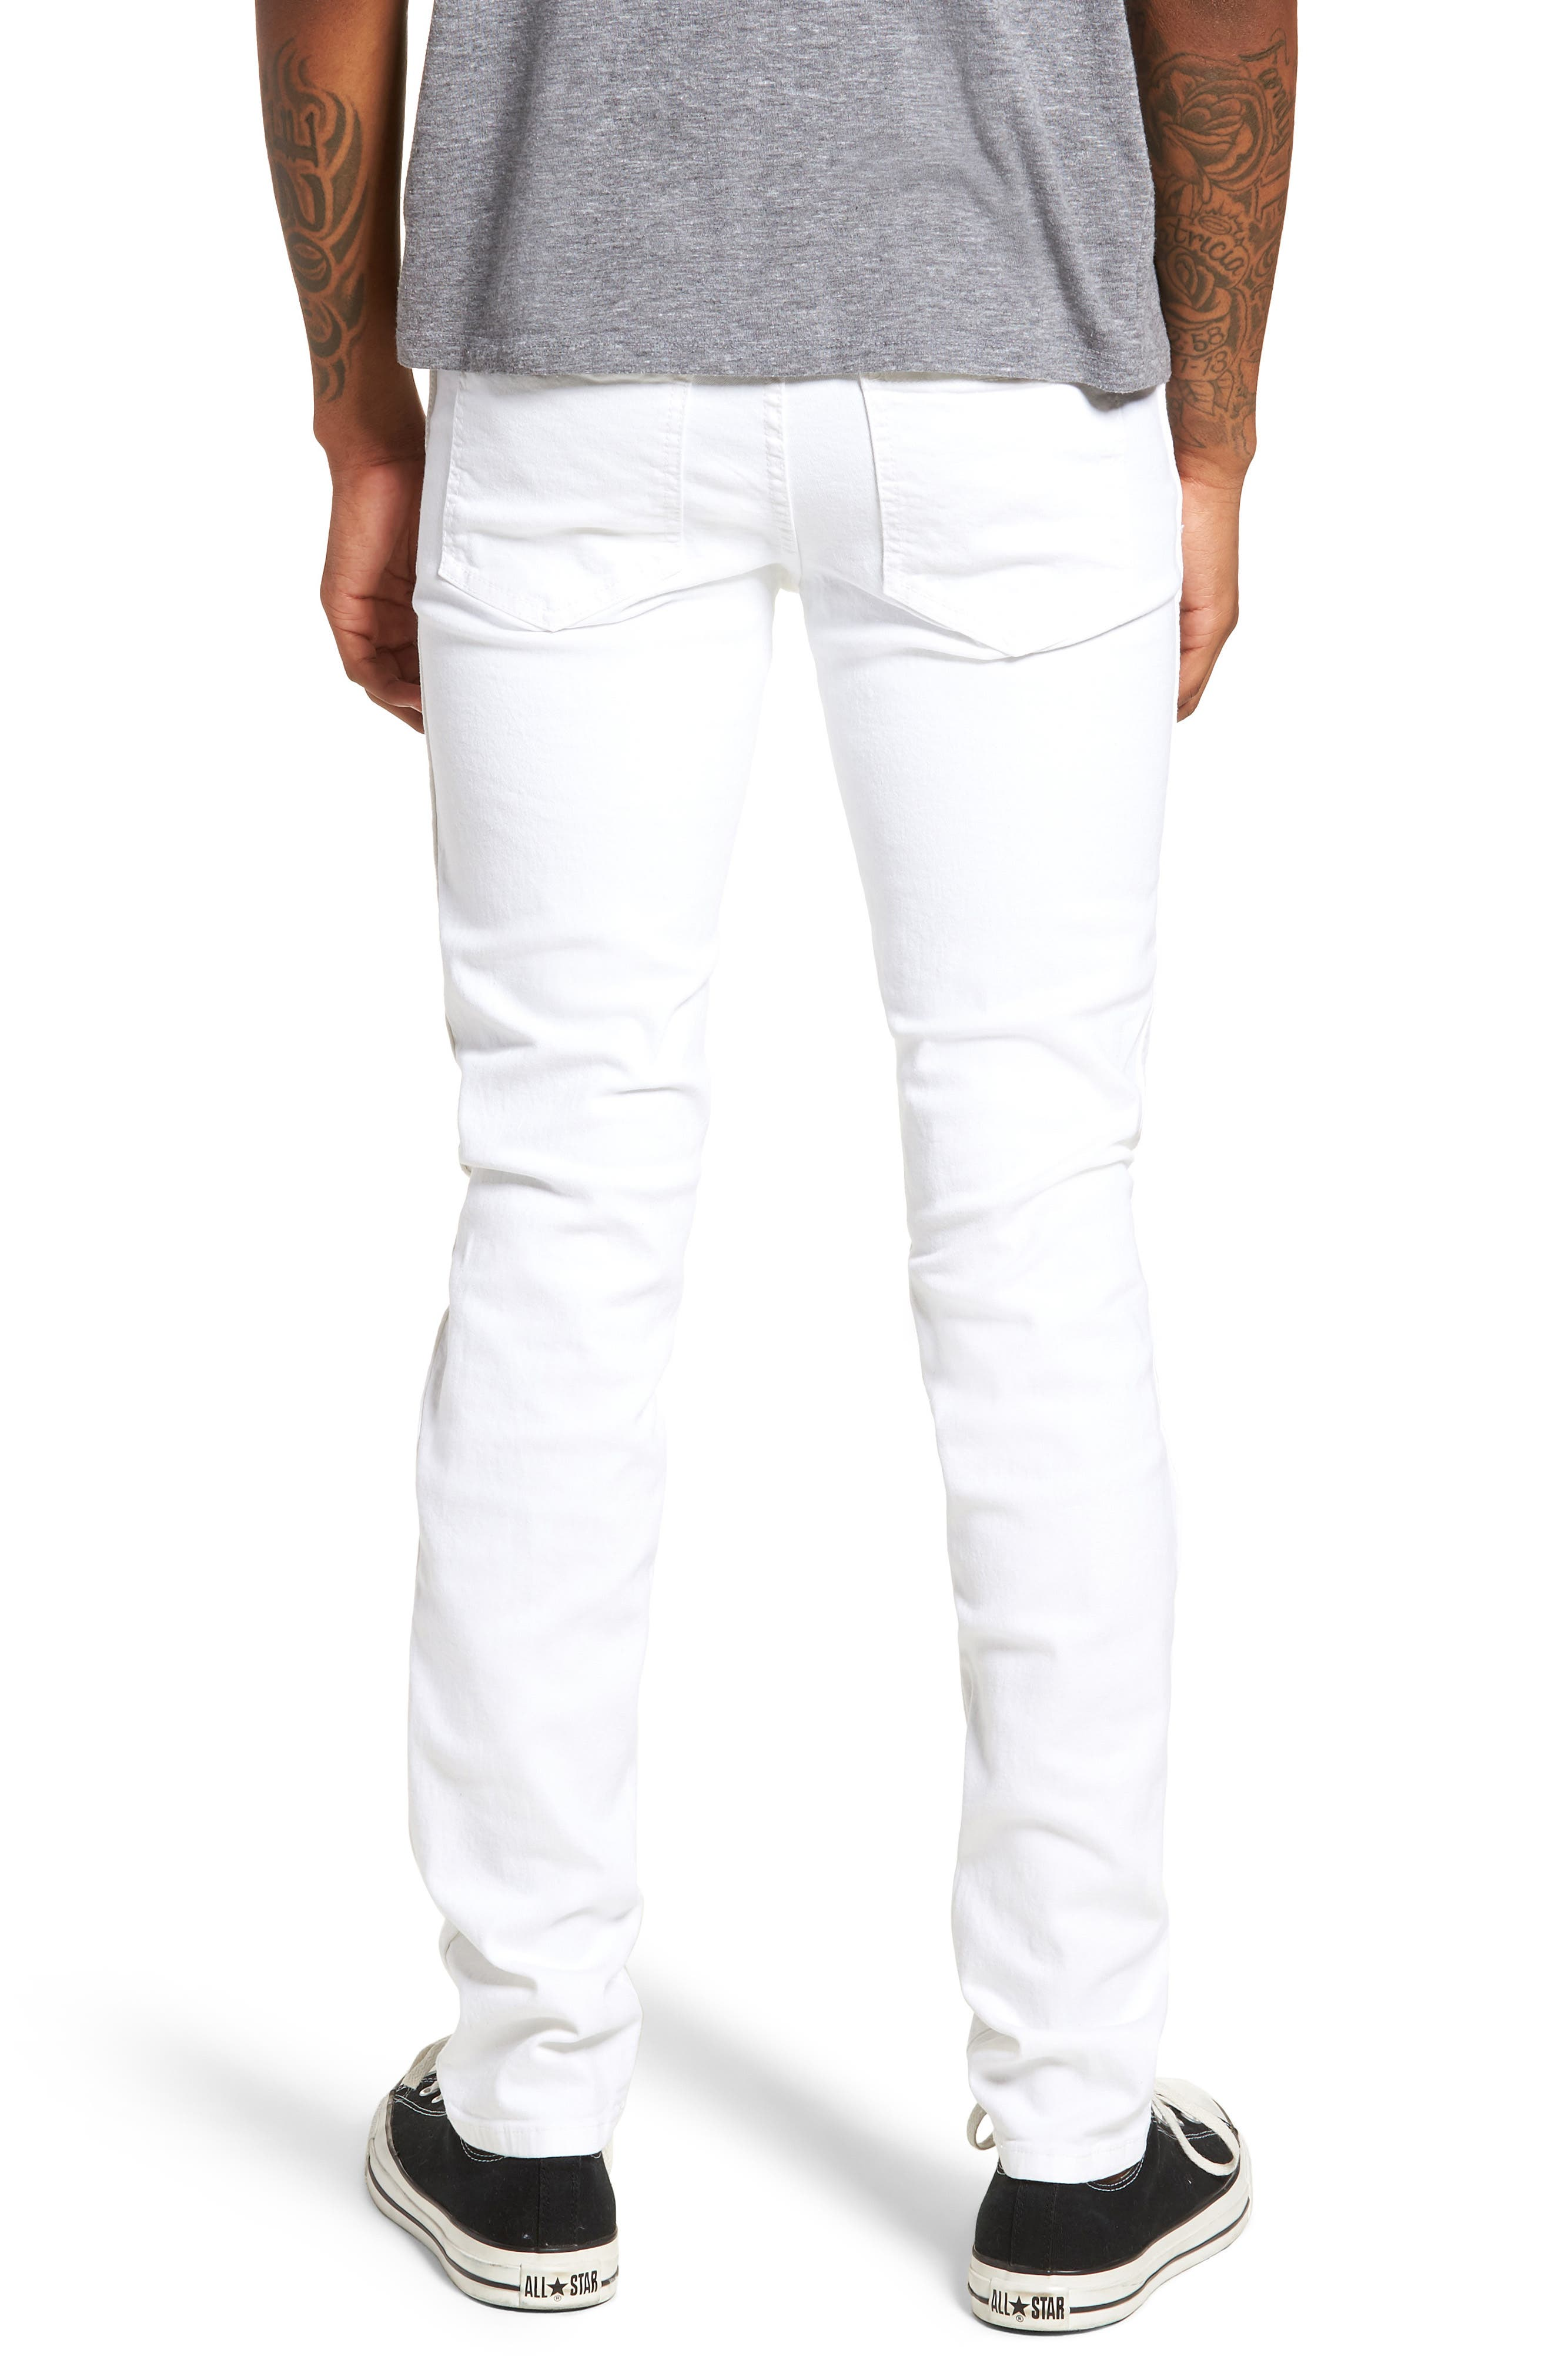 Snap Skinny Fit Jeans,                             Alternate thumbnail 2, color,                             White Ripped